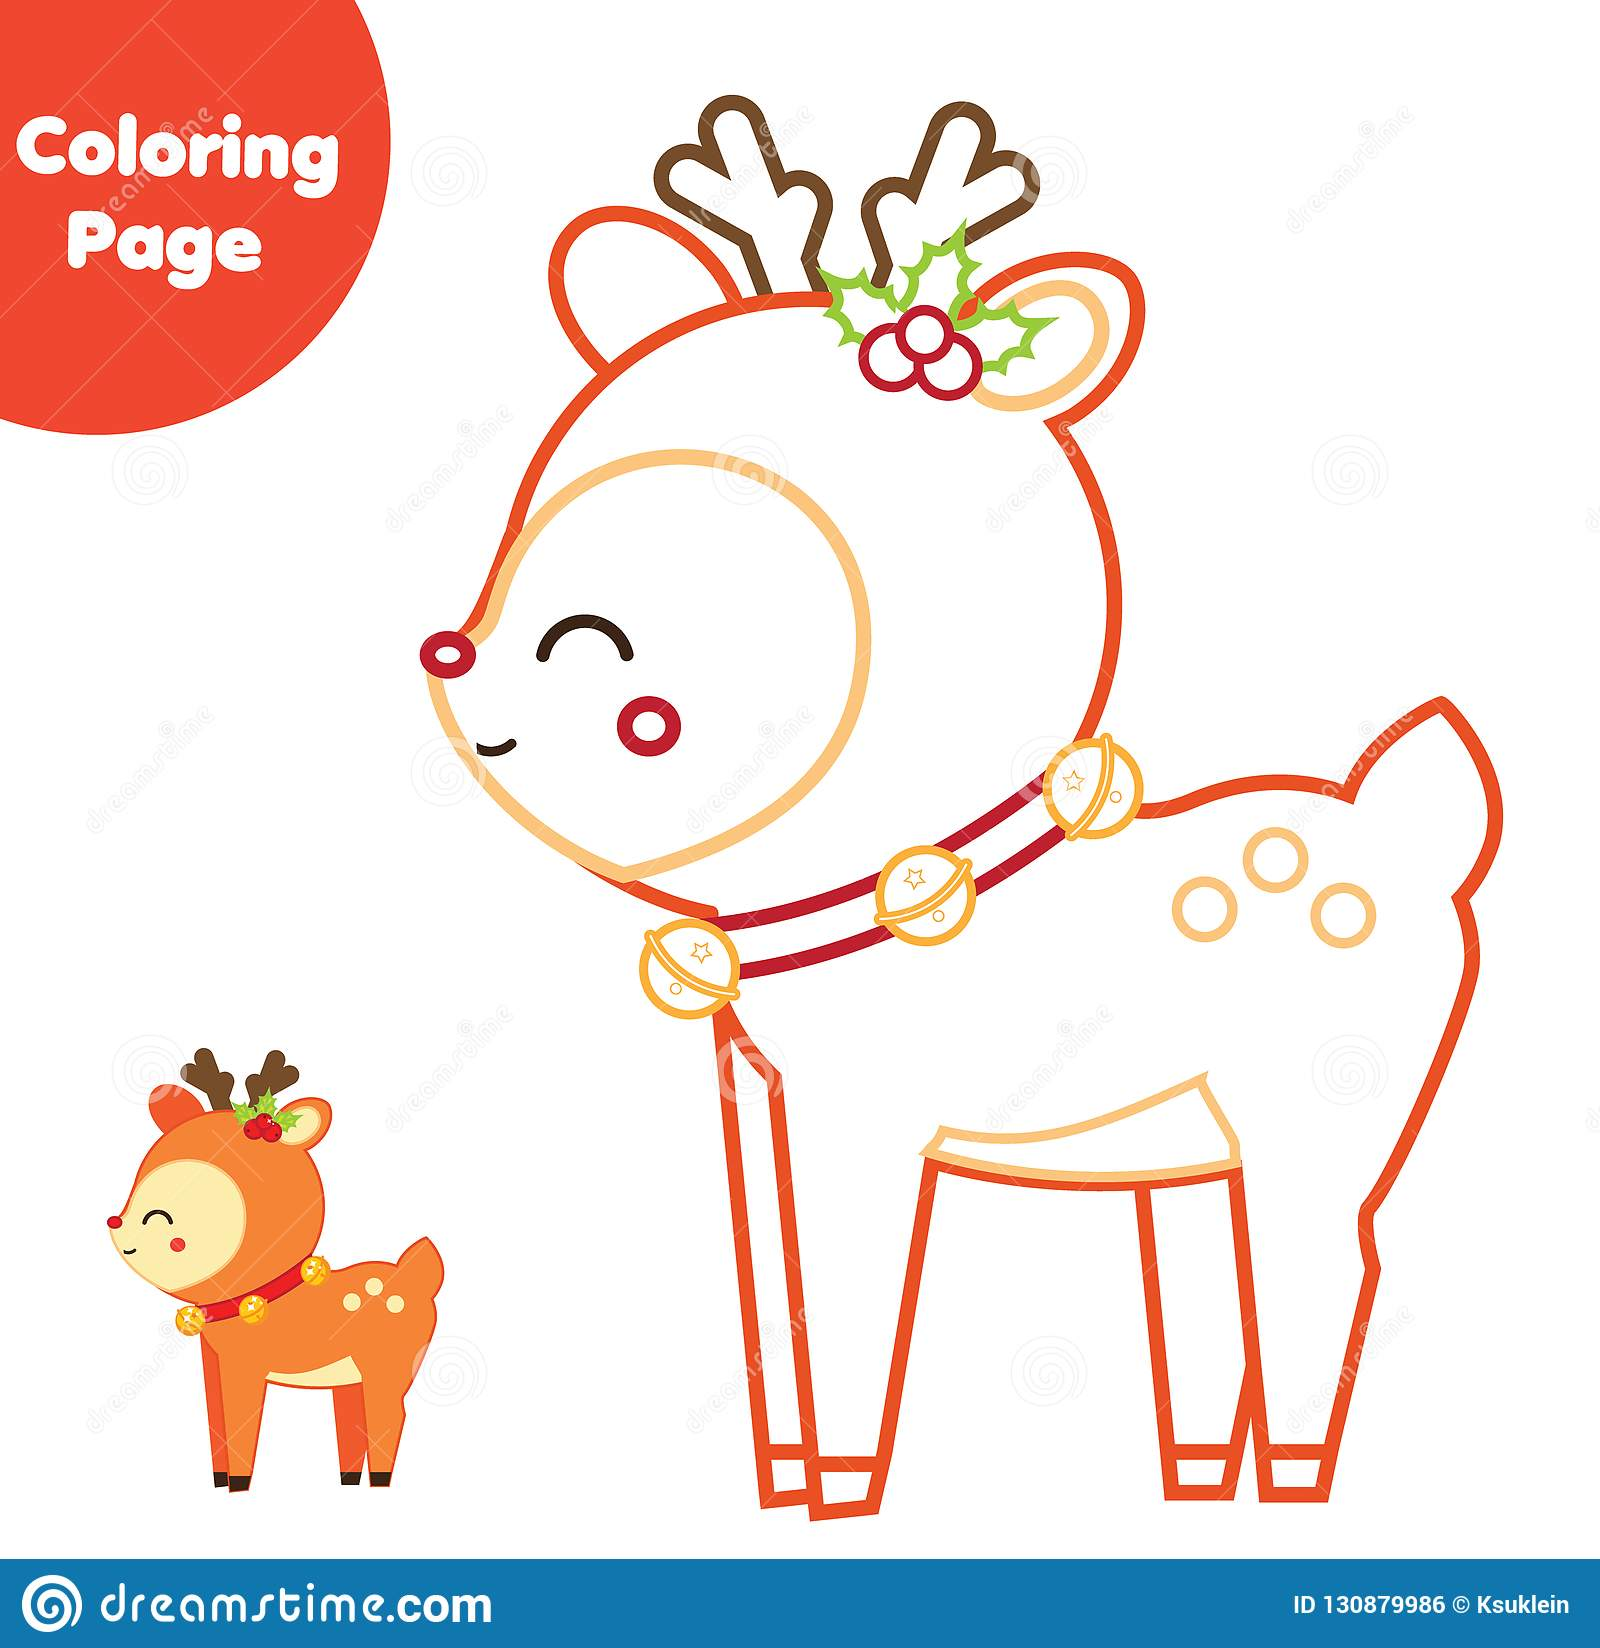 Coloring Page Educational Children Game Color Christmas Deer